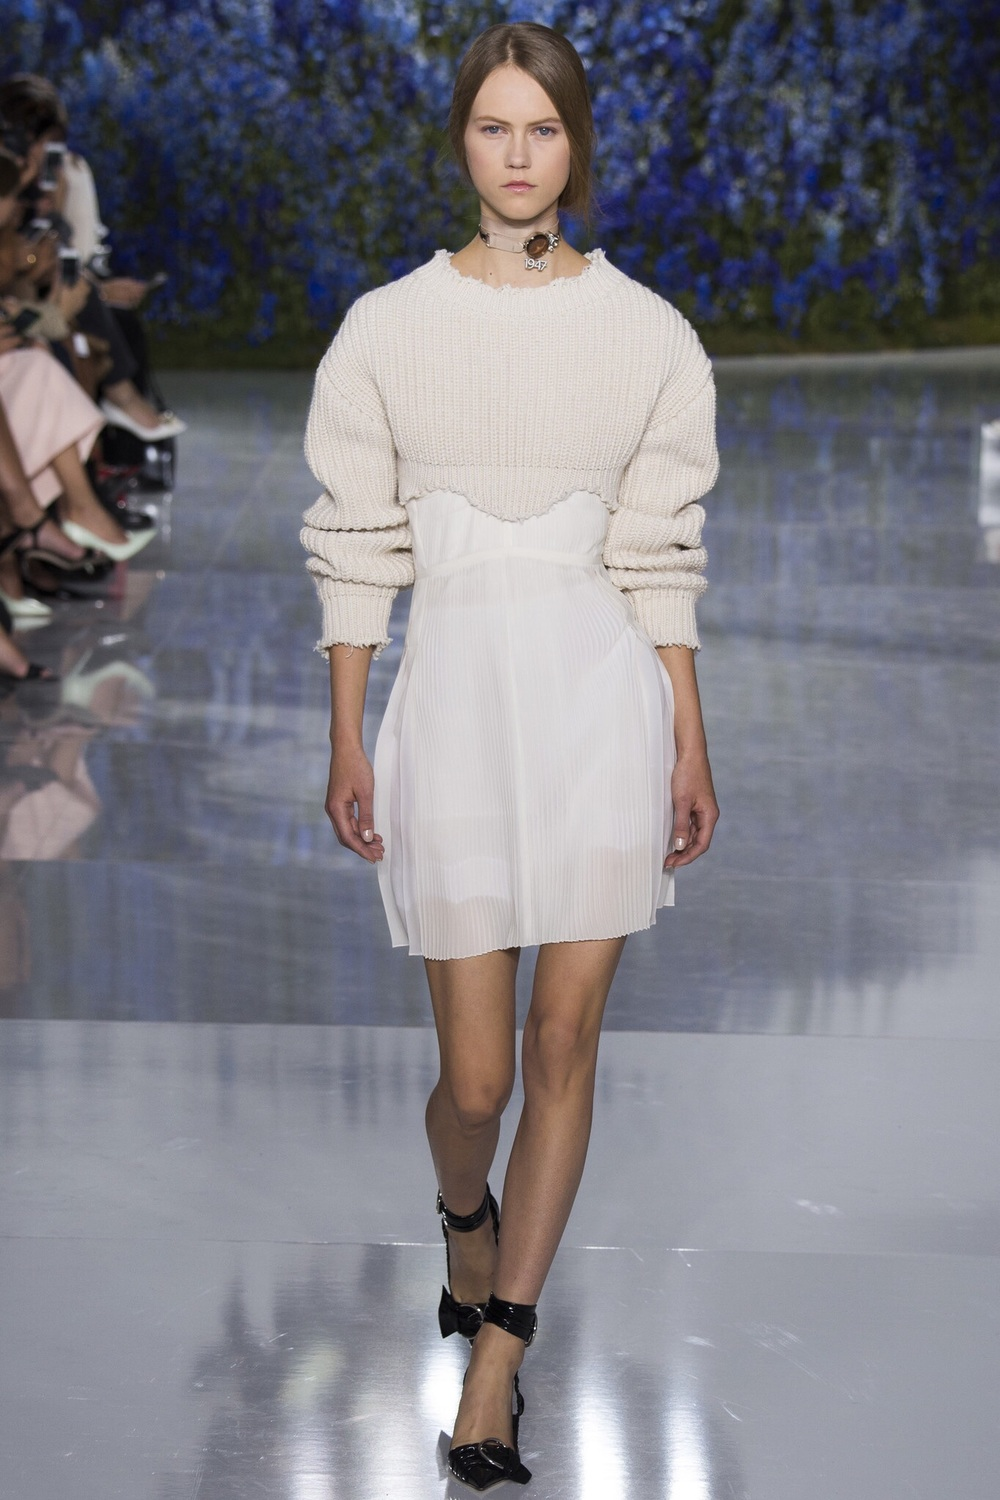 Christian Dior, Look #9 http://www.vogue.com/fashion-shows/spring-2016-ready-to-wear/christian-dior/slideshow/collection#9?mbid=ios_share